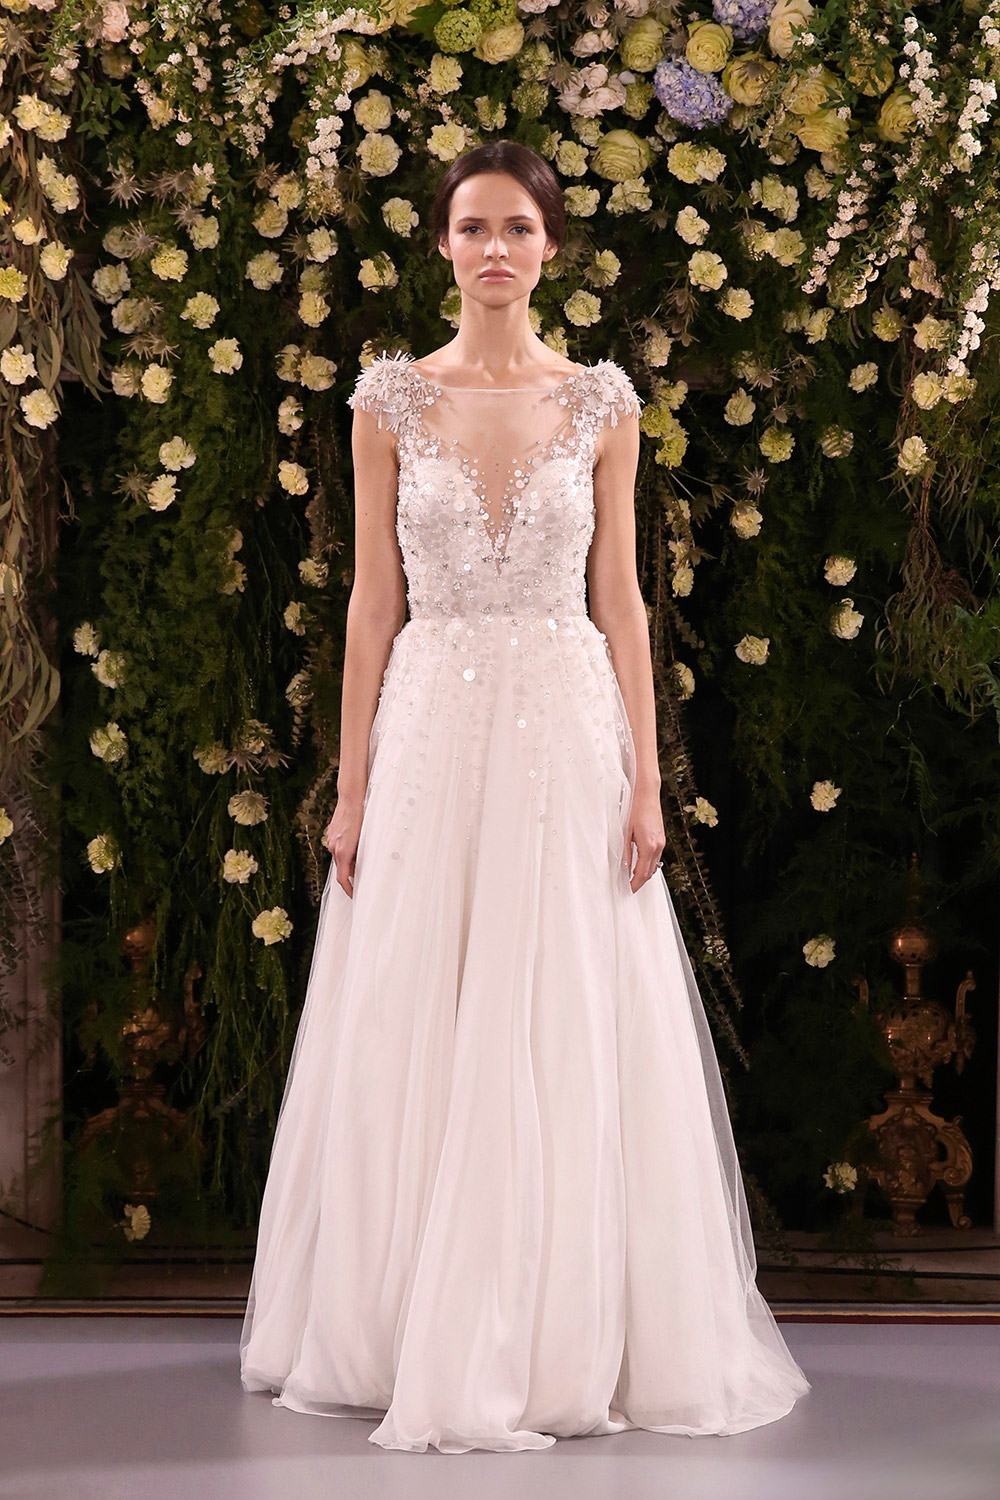 Bluebell – Jenny Packham 2019 Bridal Collection. www.theweddingnotebook.com